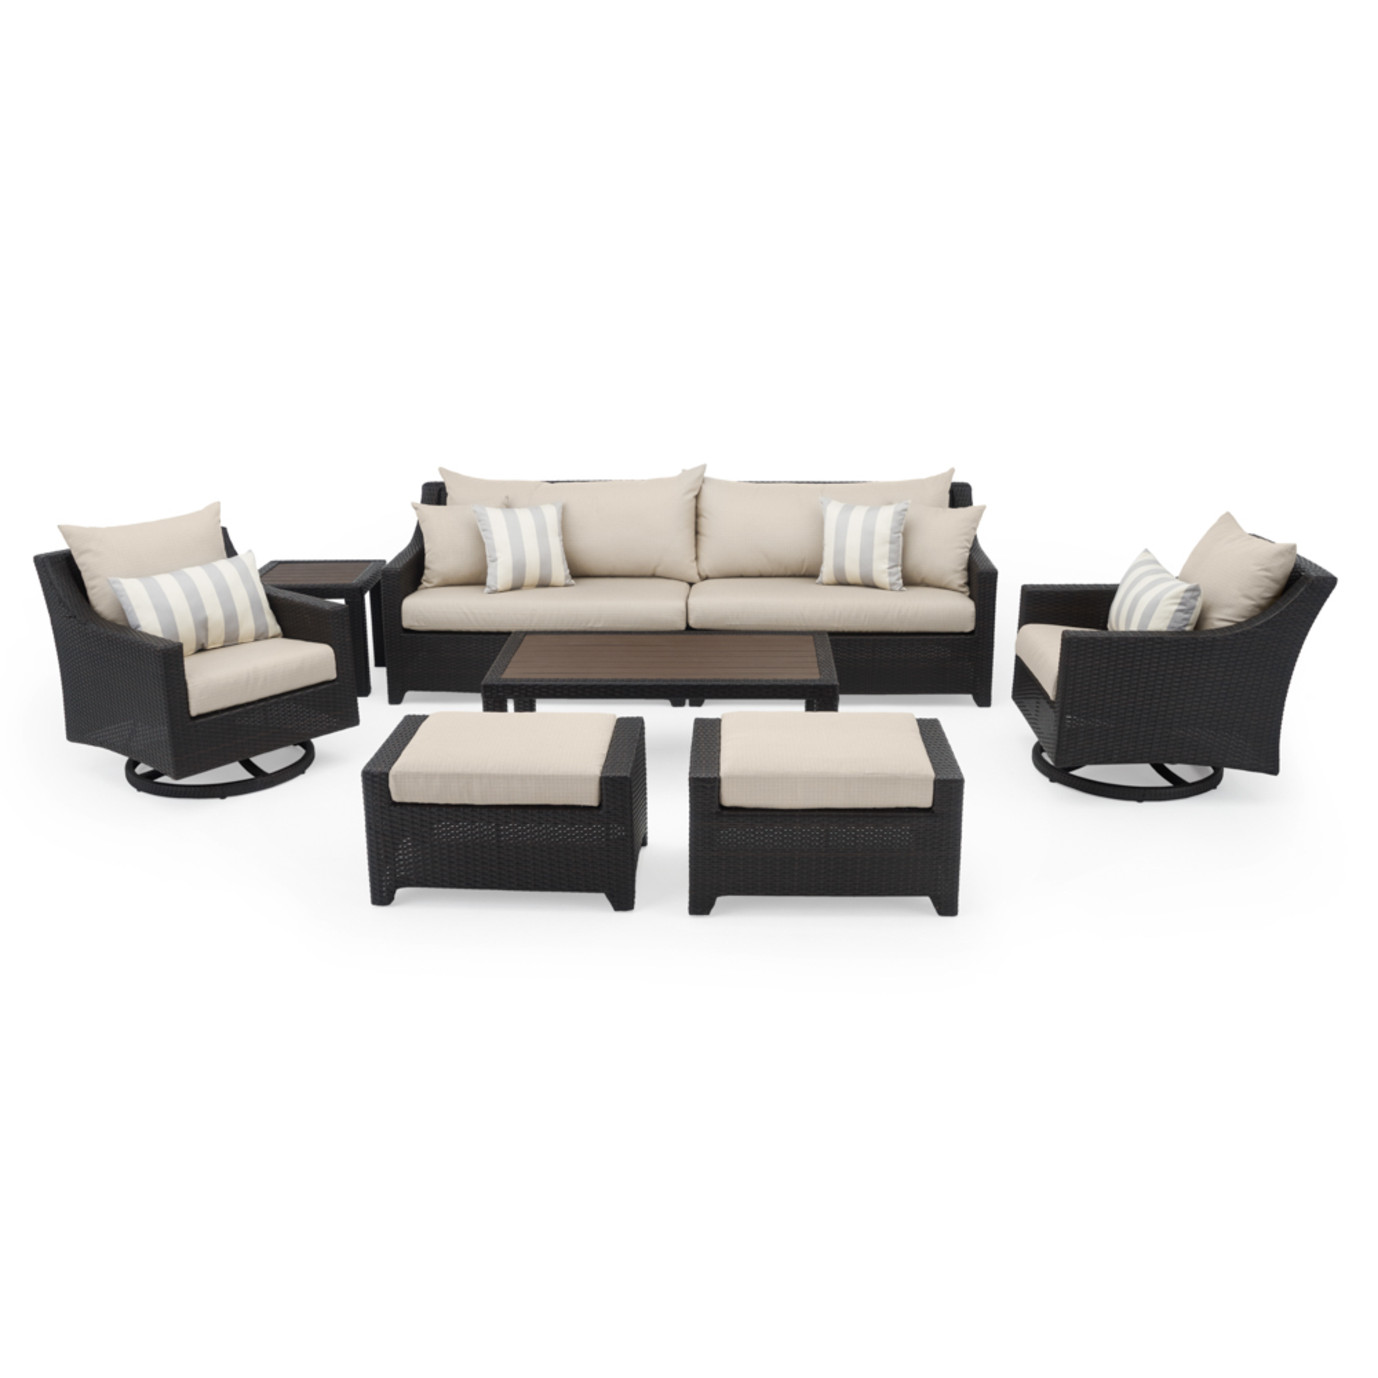 Deco™ Deluxe 8pc Sofa & Club Chair Set - Slate Gray